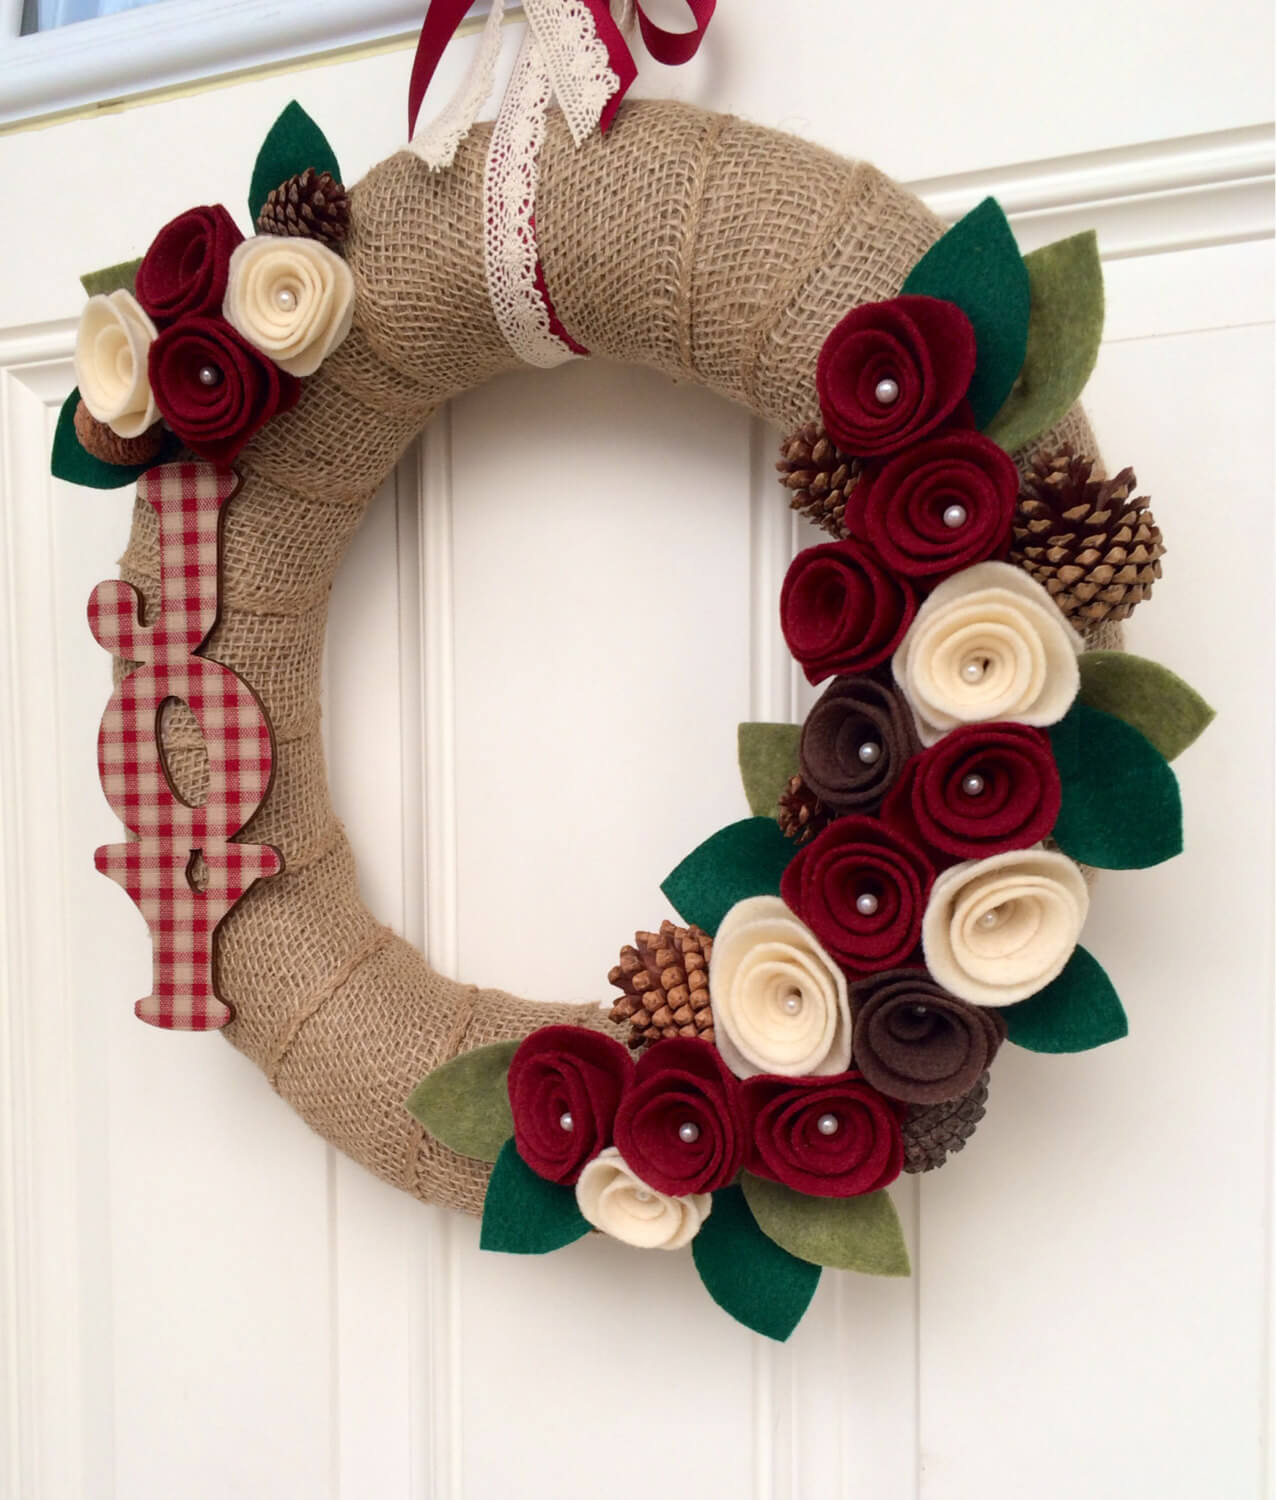 10 Handmade Front Door Christmas Wreaths Adorable Home